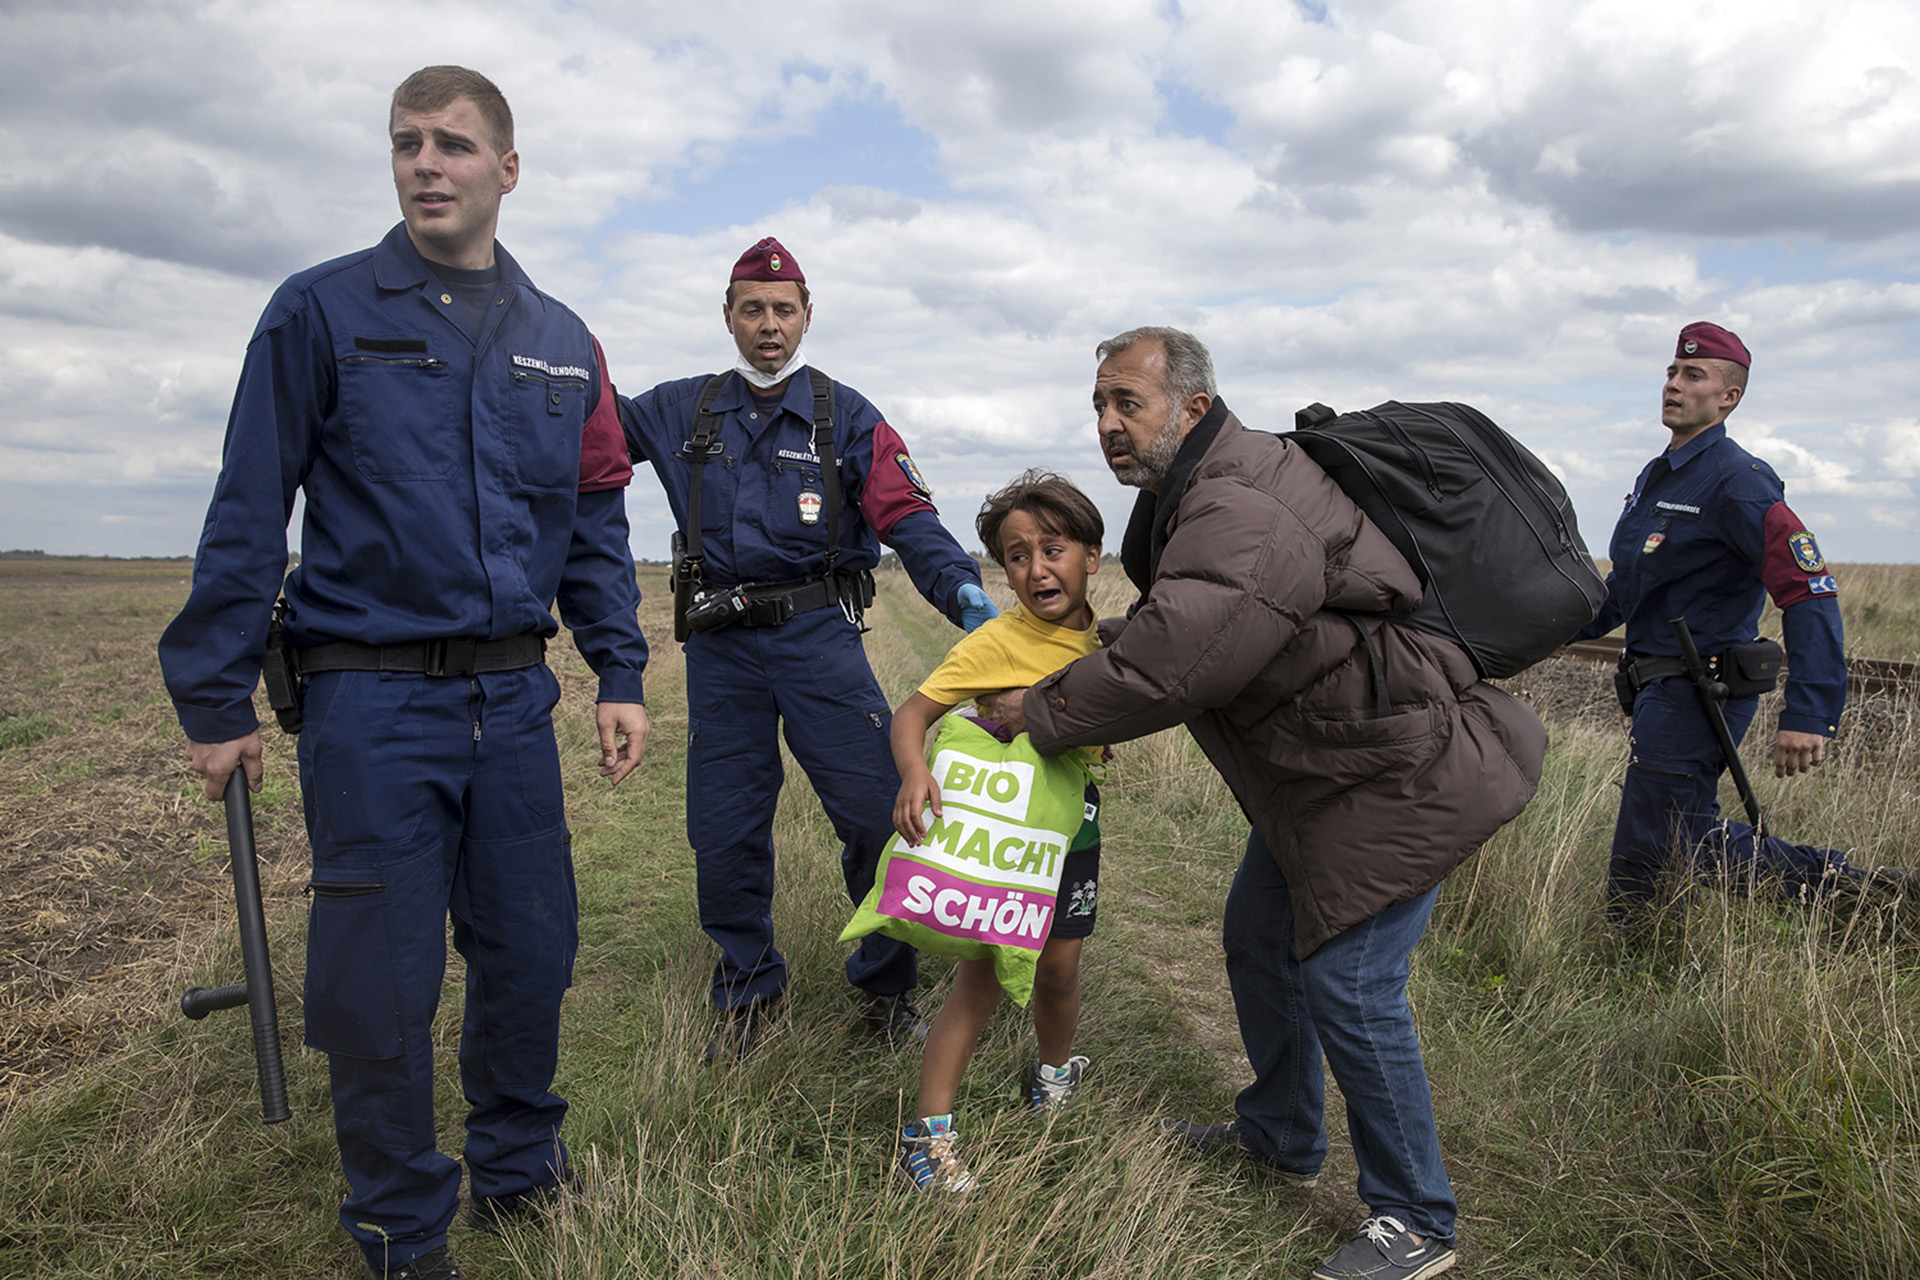 Hungarian police officers stop migrants as they try to escape on a field nearby a collection point in the village of Roszke, Hungary, September 8, 2015. REUTERS/Marko Djurica - RTX1RMHD